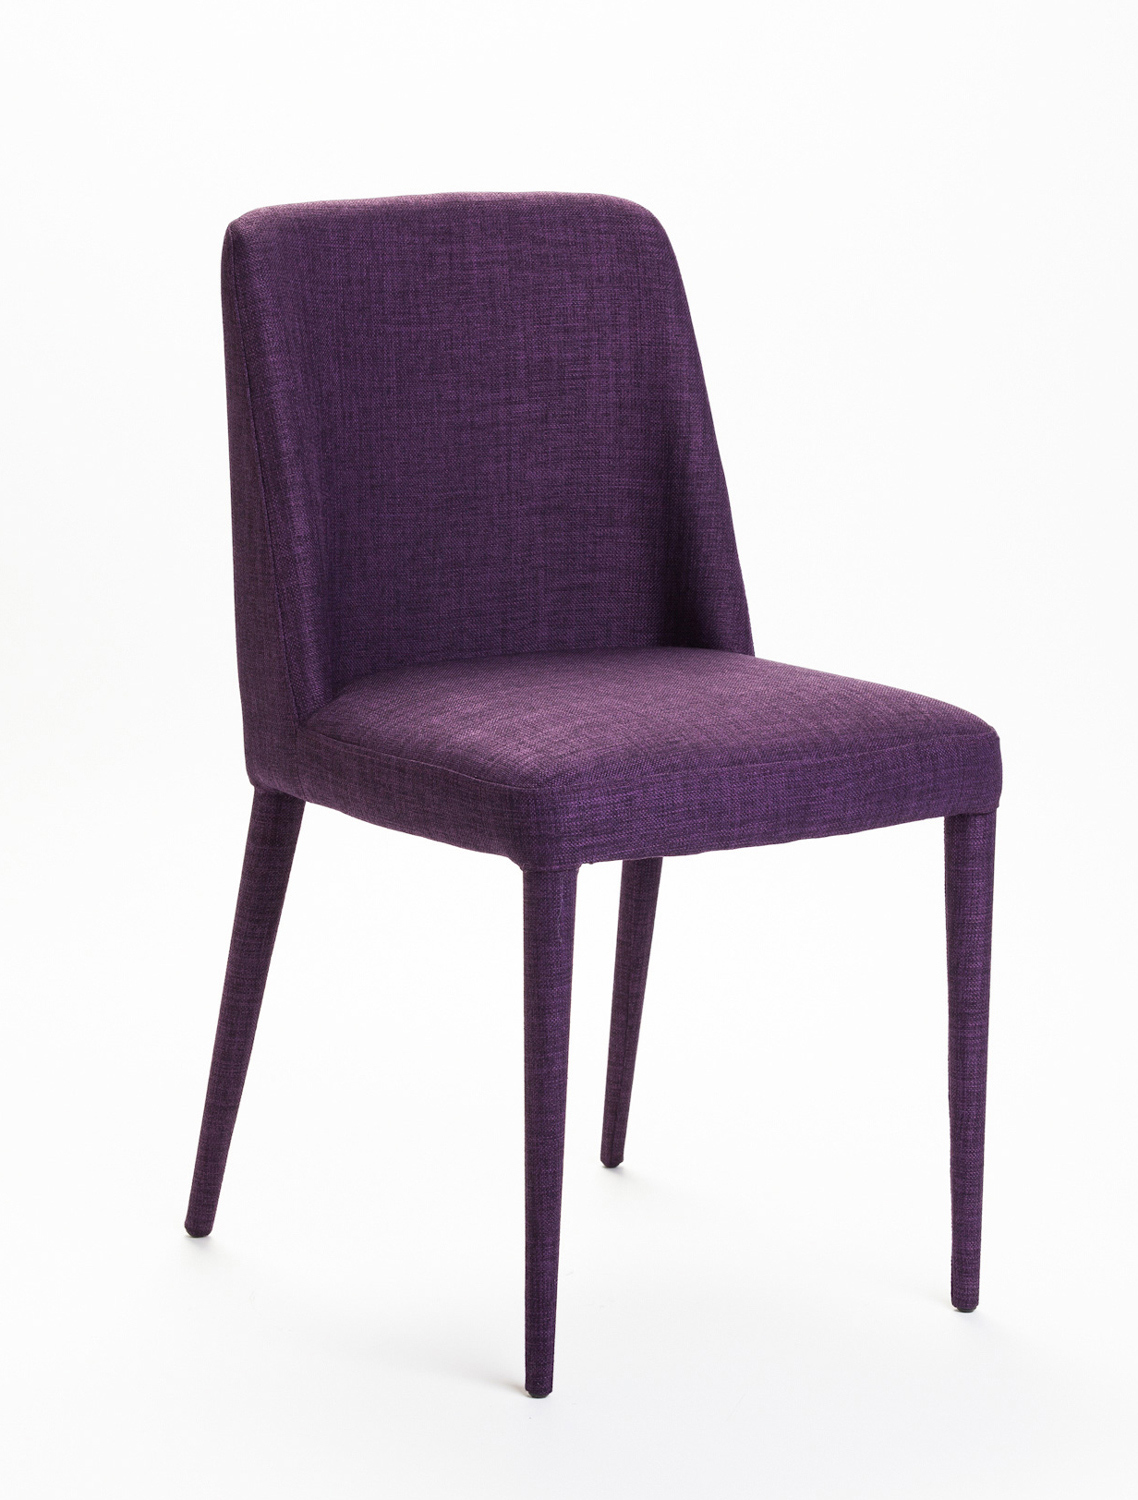 Cork Dining Chair  Dining chairs, Side chairs dining